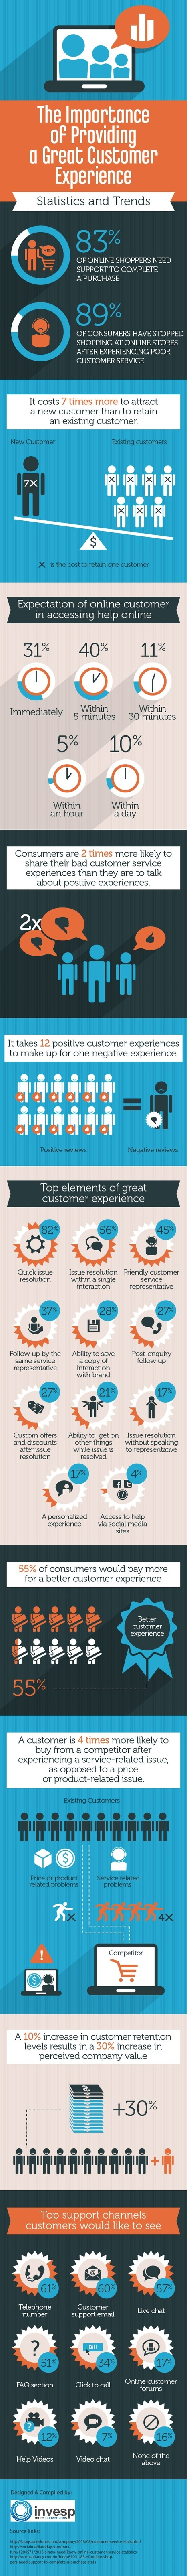 How Important Is Customer Service In Customer Experience? #infographic | Customer Service Innovation | Scoop.it